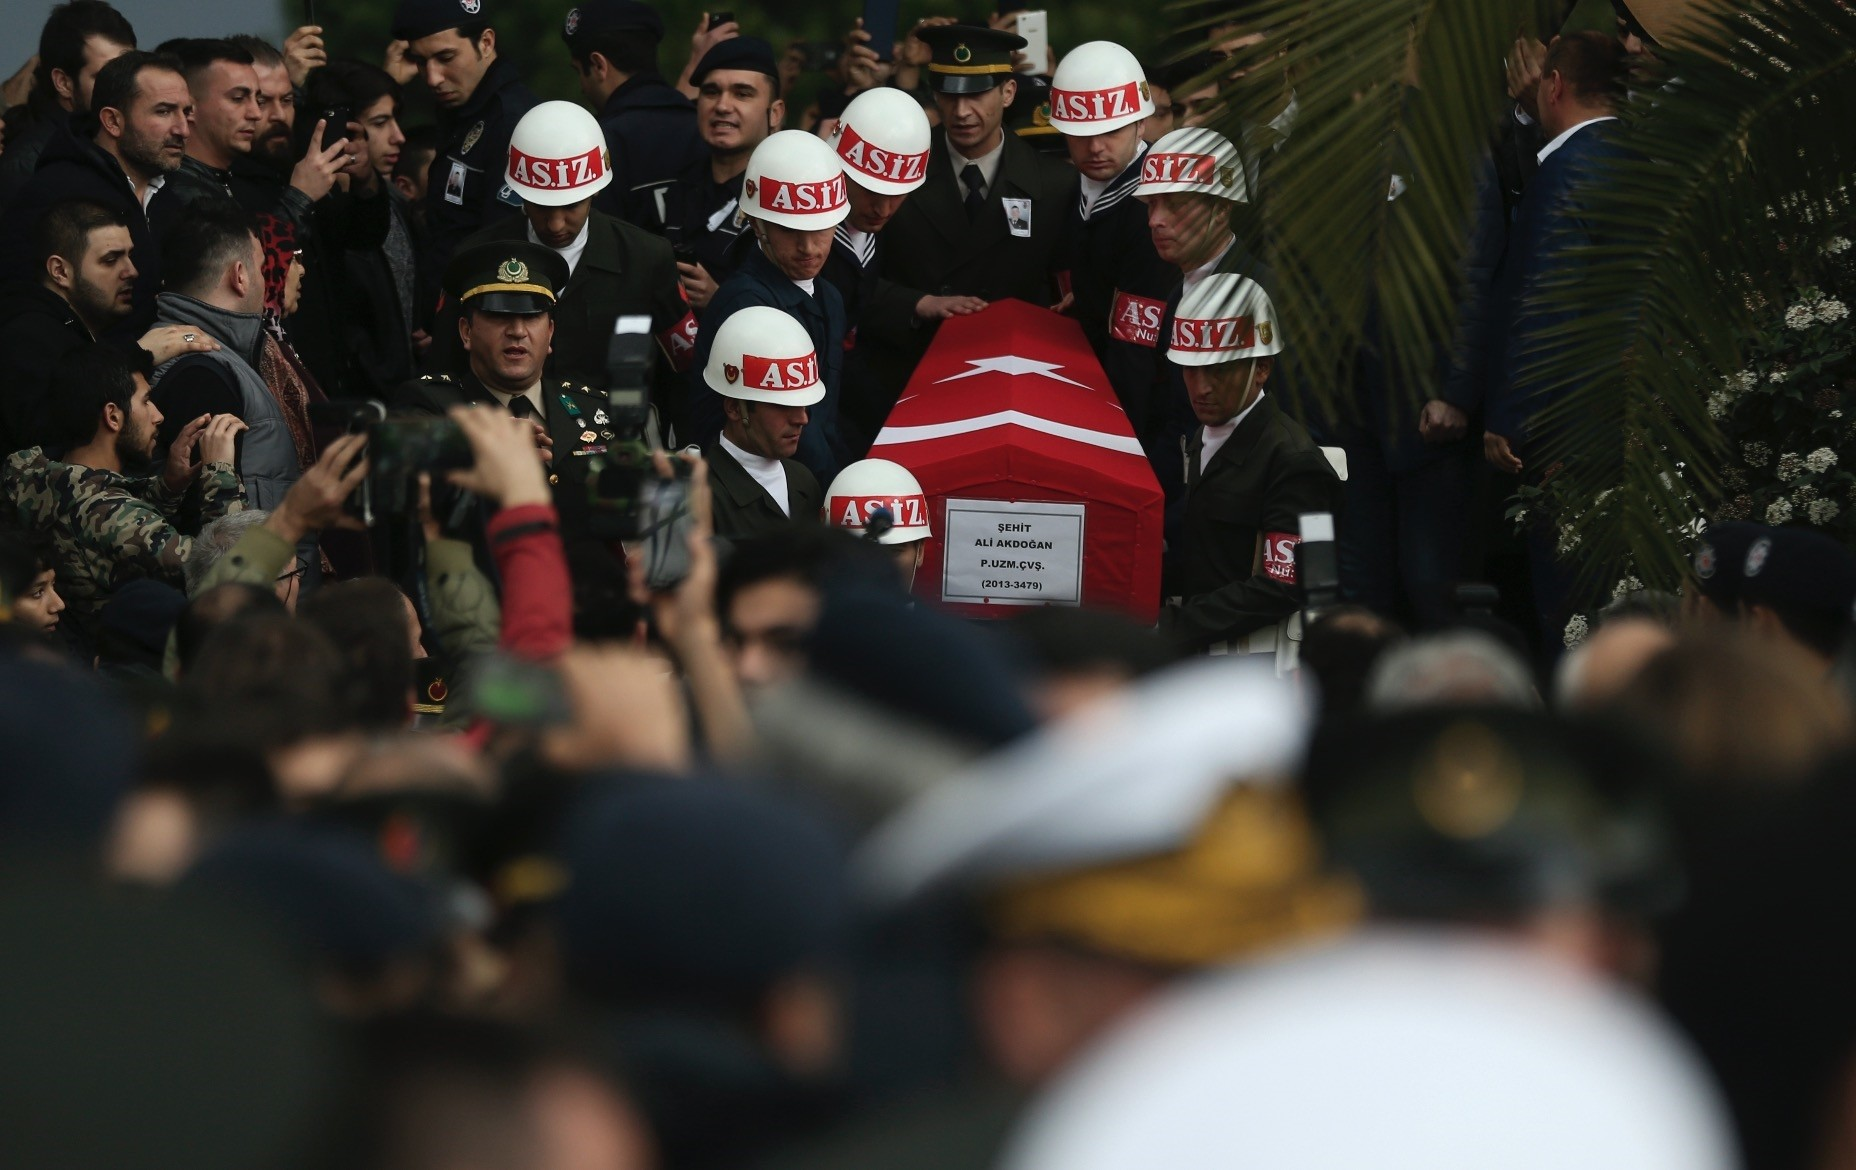 Soldiers carry the flag-covered coffin of Ali Akdou011fan, killed by U.S.-backed YPG terrorists during Turkeyu2019s counterterrorism operation in Afrin, at a funeral ceremony, u0130zmir, Feb. 11.